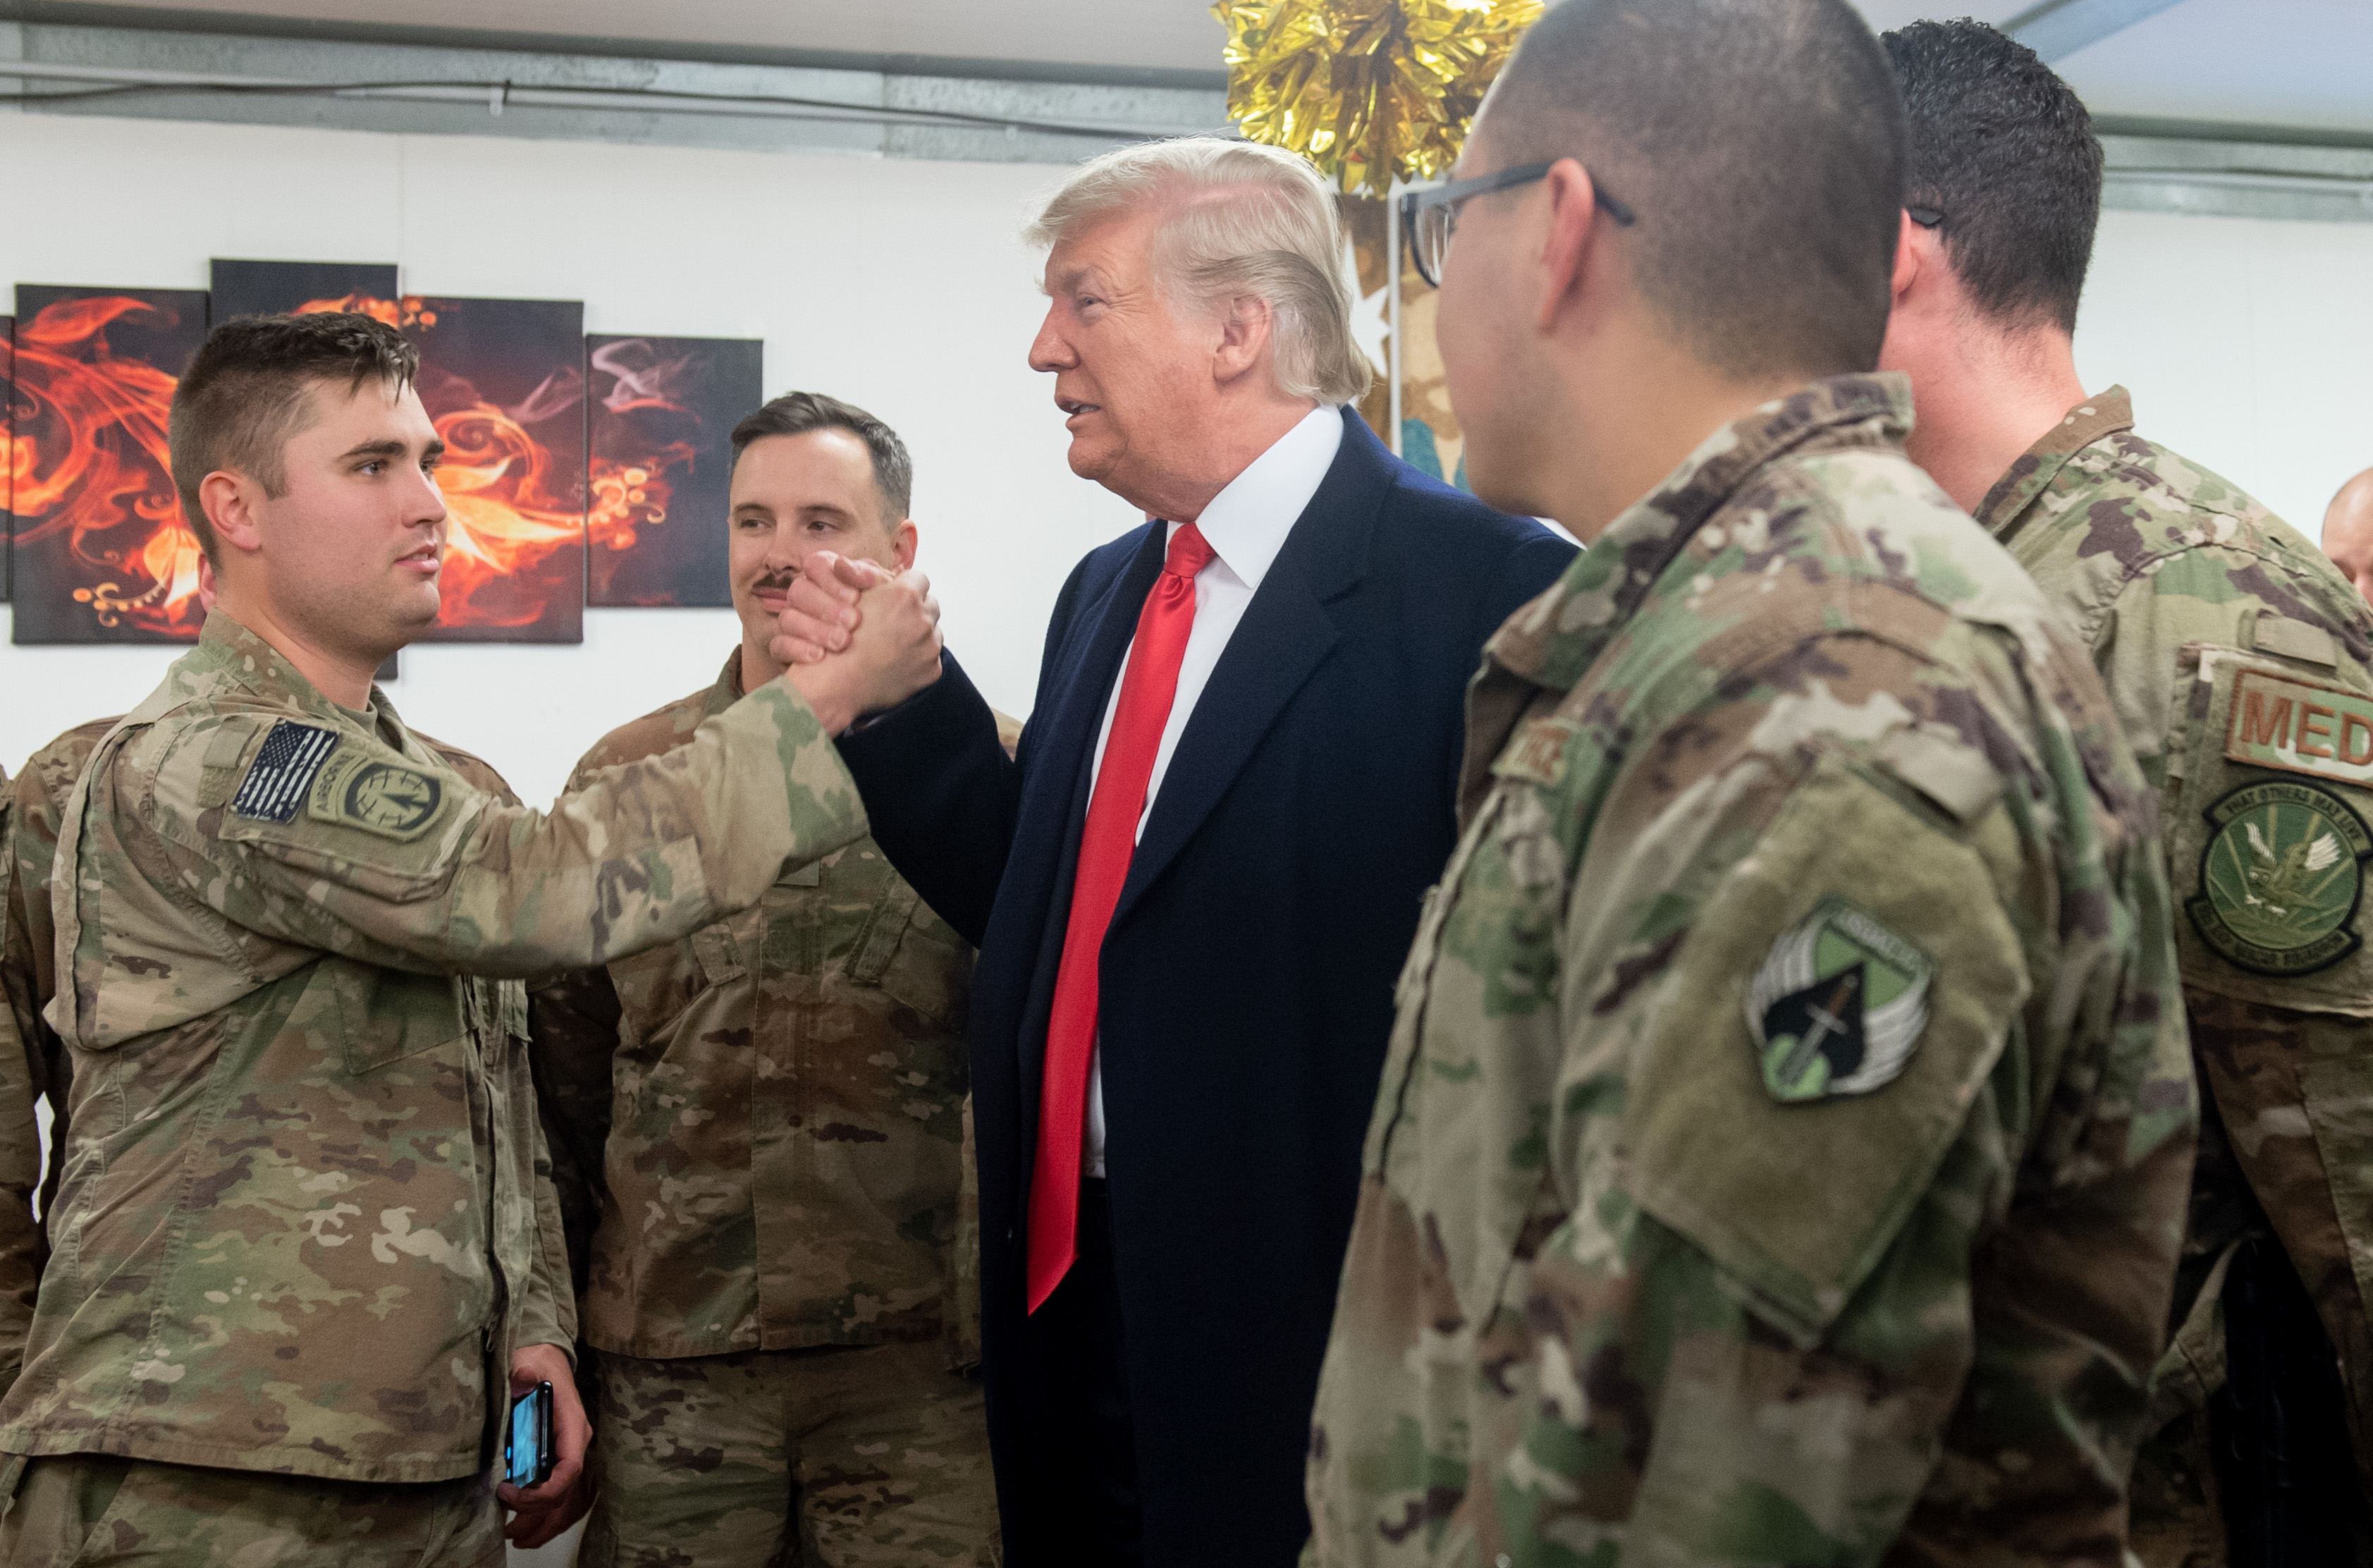 US President Donald Trump greets members of the US military during an unannounced trip to Al Asad Air Base in Iraq on December 26, 2018. SAUL LOEB/AFP/Getty Images